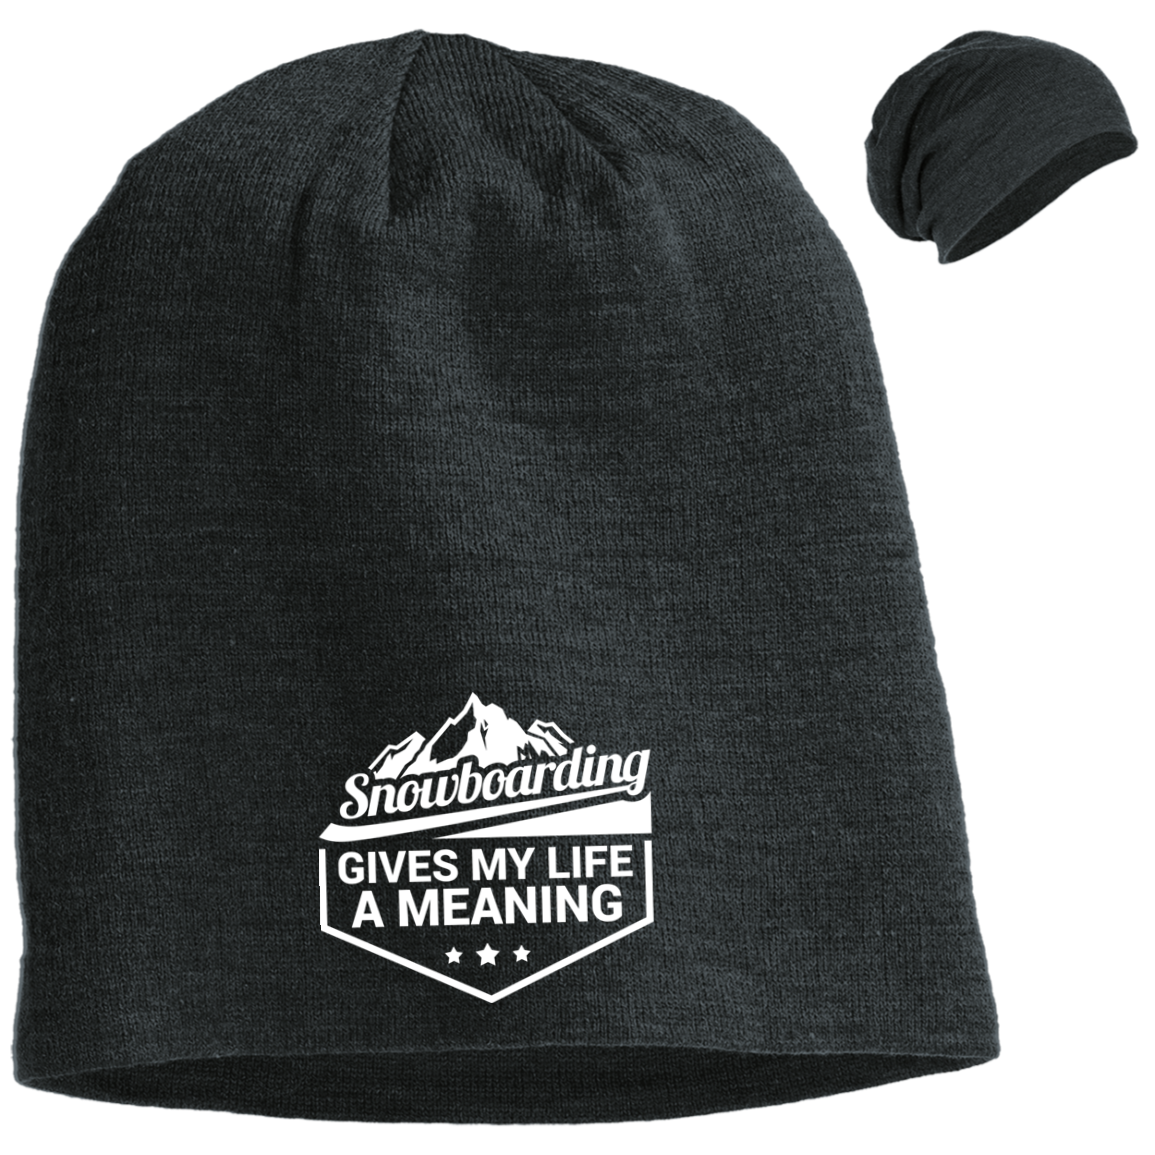 Snowboarding Gives My Life a Meaning Slouch Beanie - Powderaddicts